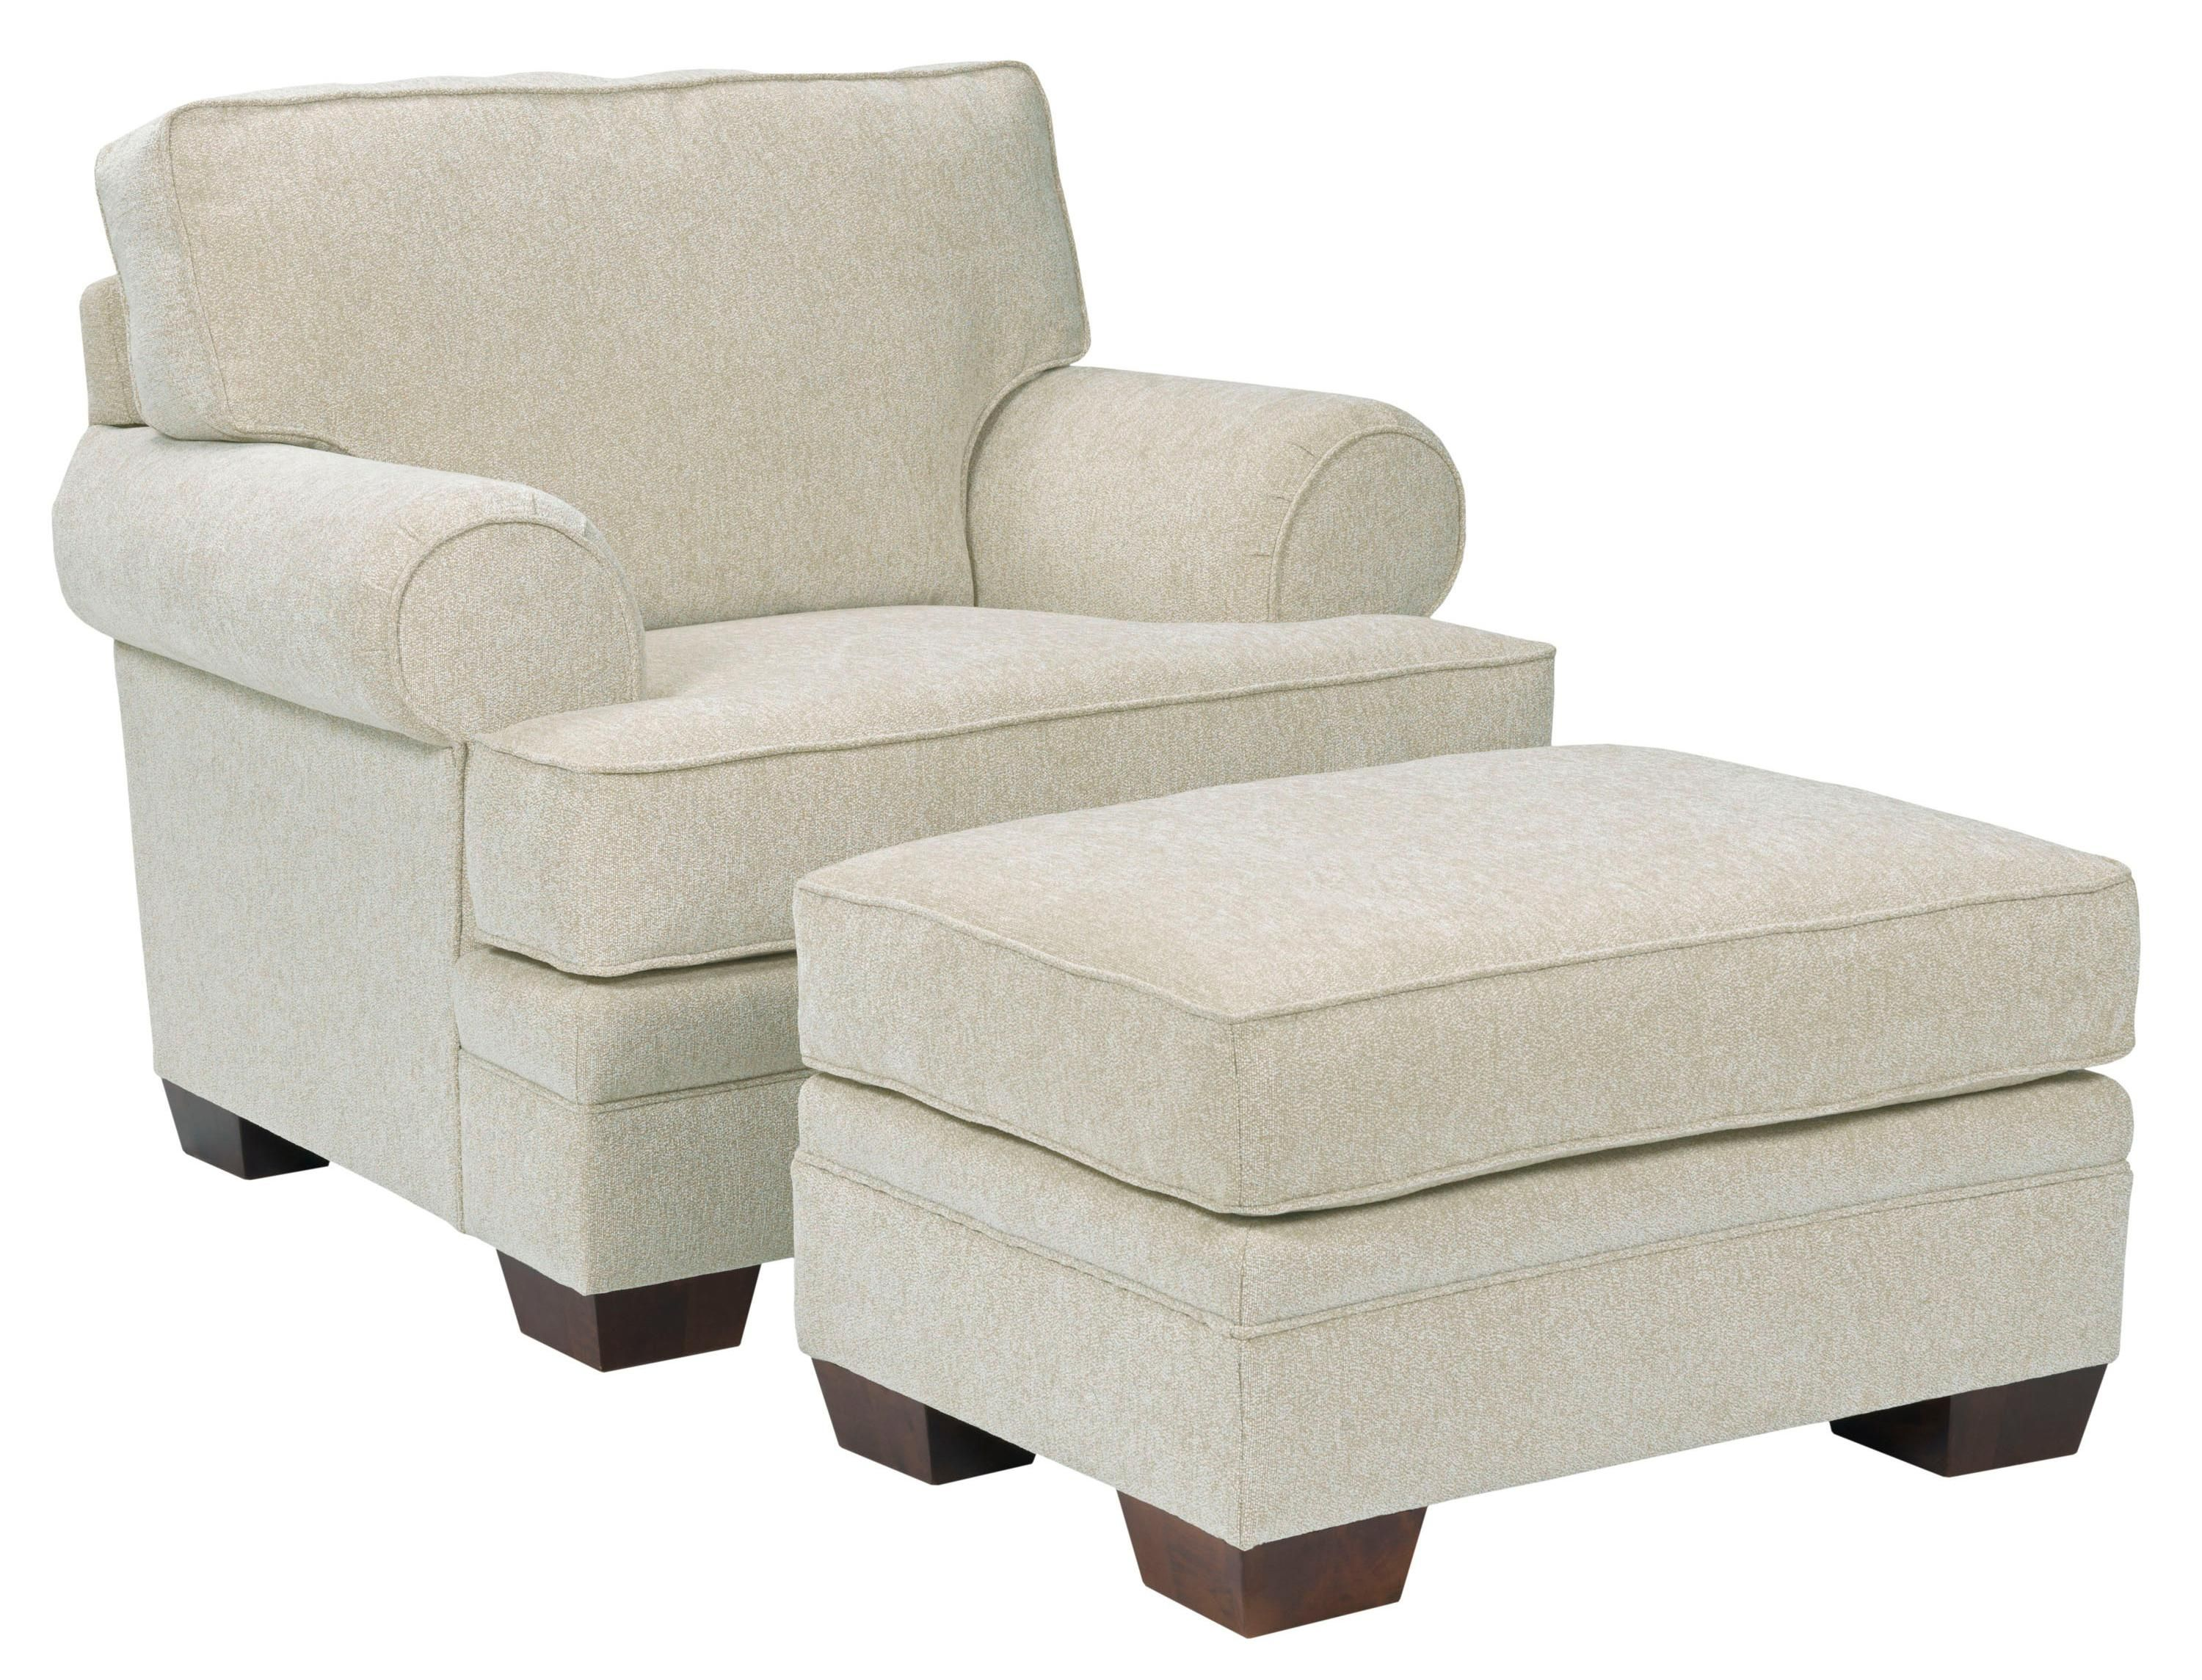 Landon Transitional Chair and Ottoman Set by Broyhill Furniture  sc 1 st  Pinterest & Landon Transitional Chair and Ottoman Set by Broyhill Furniture ...